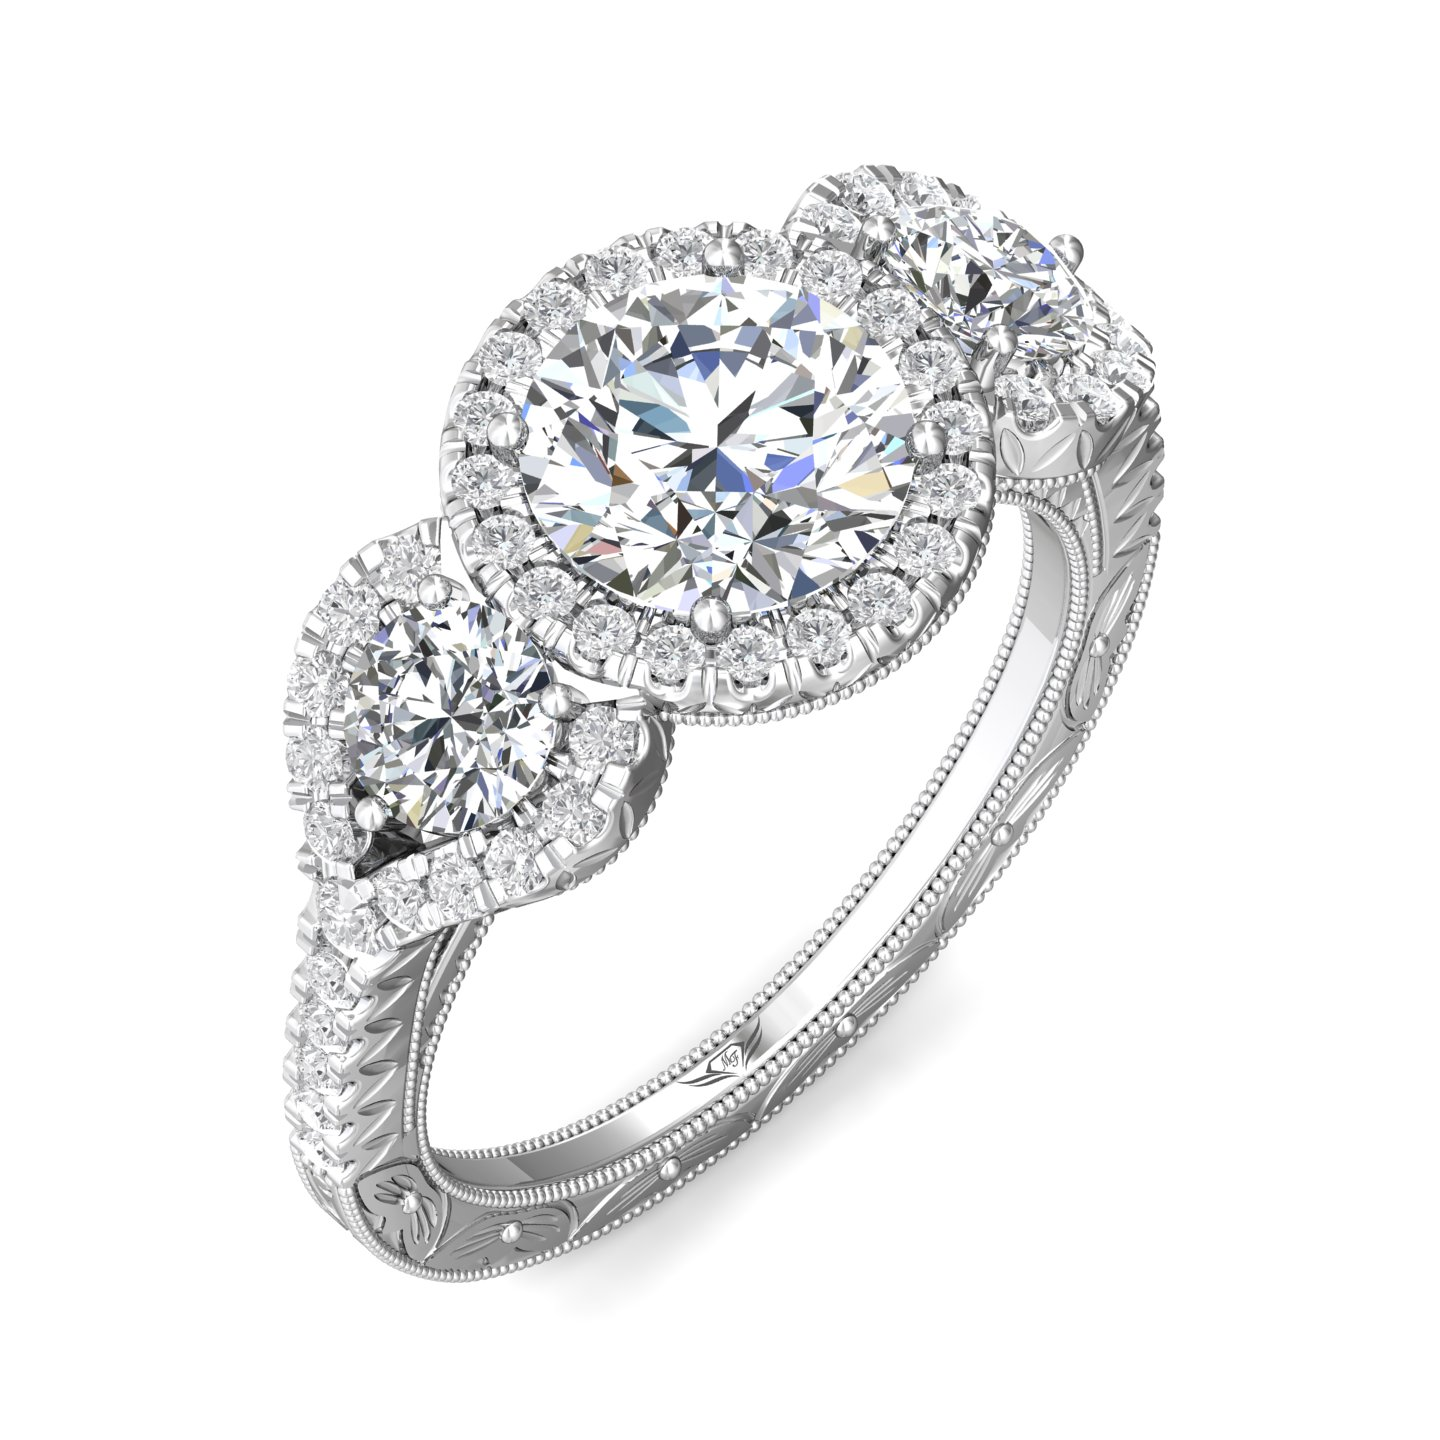 Rings - 14K White Gold FlyerFit Vintage Engagement Ring - image 5